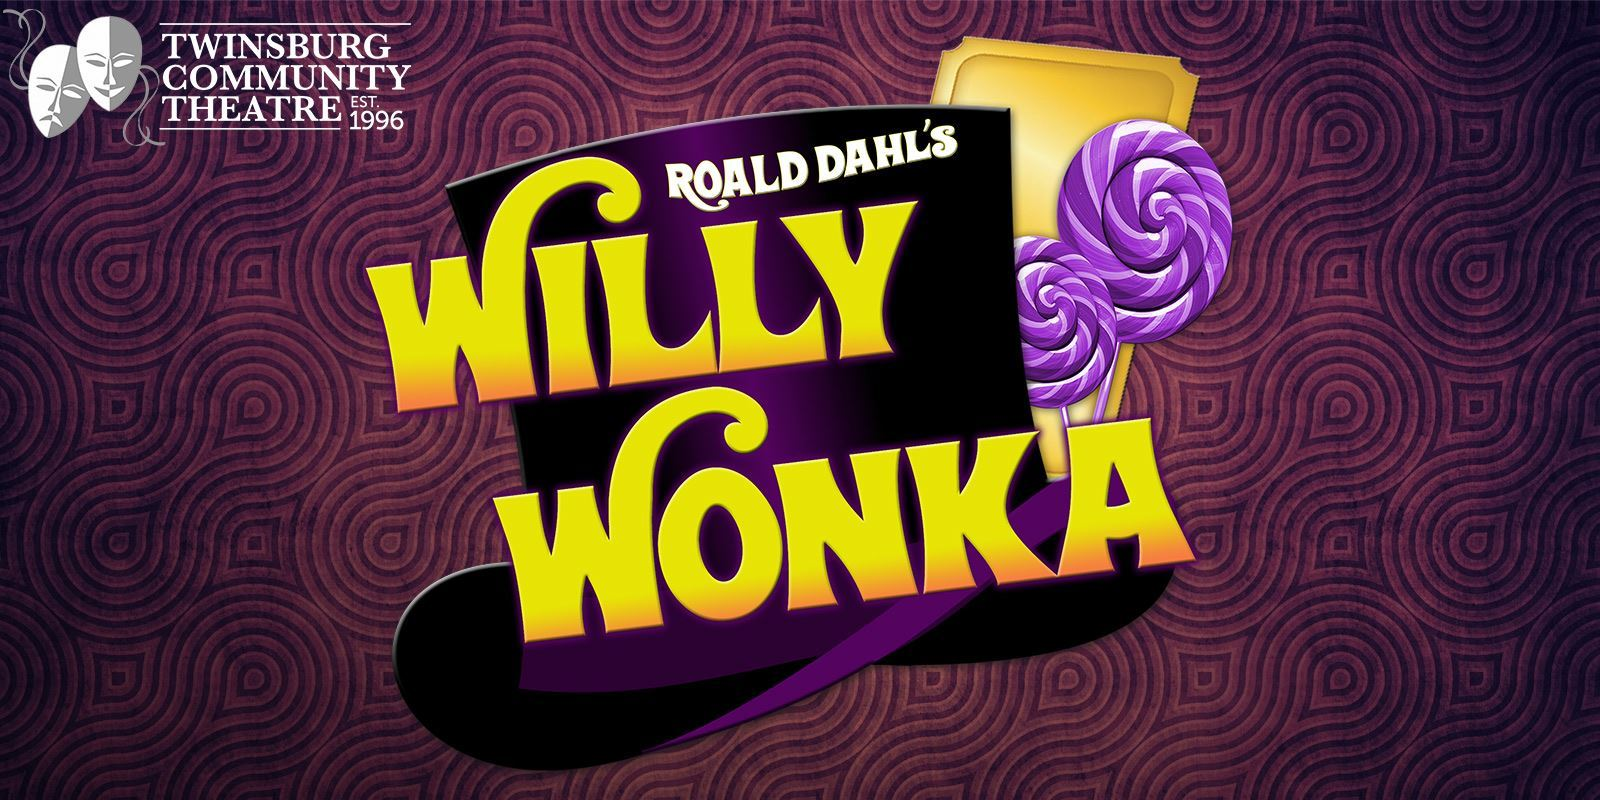 Willy Wonka – Tickets on sale now!